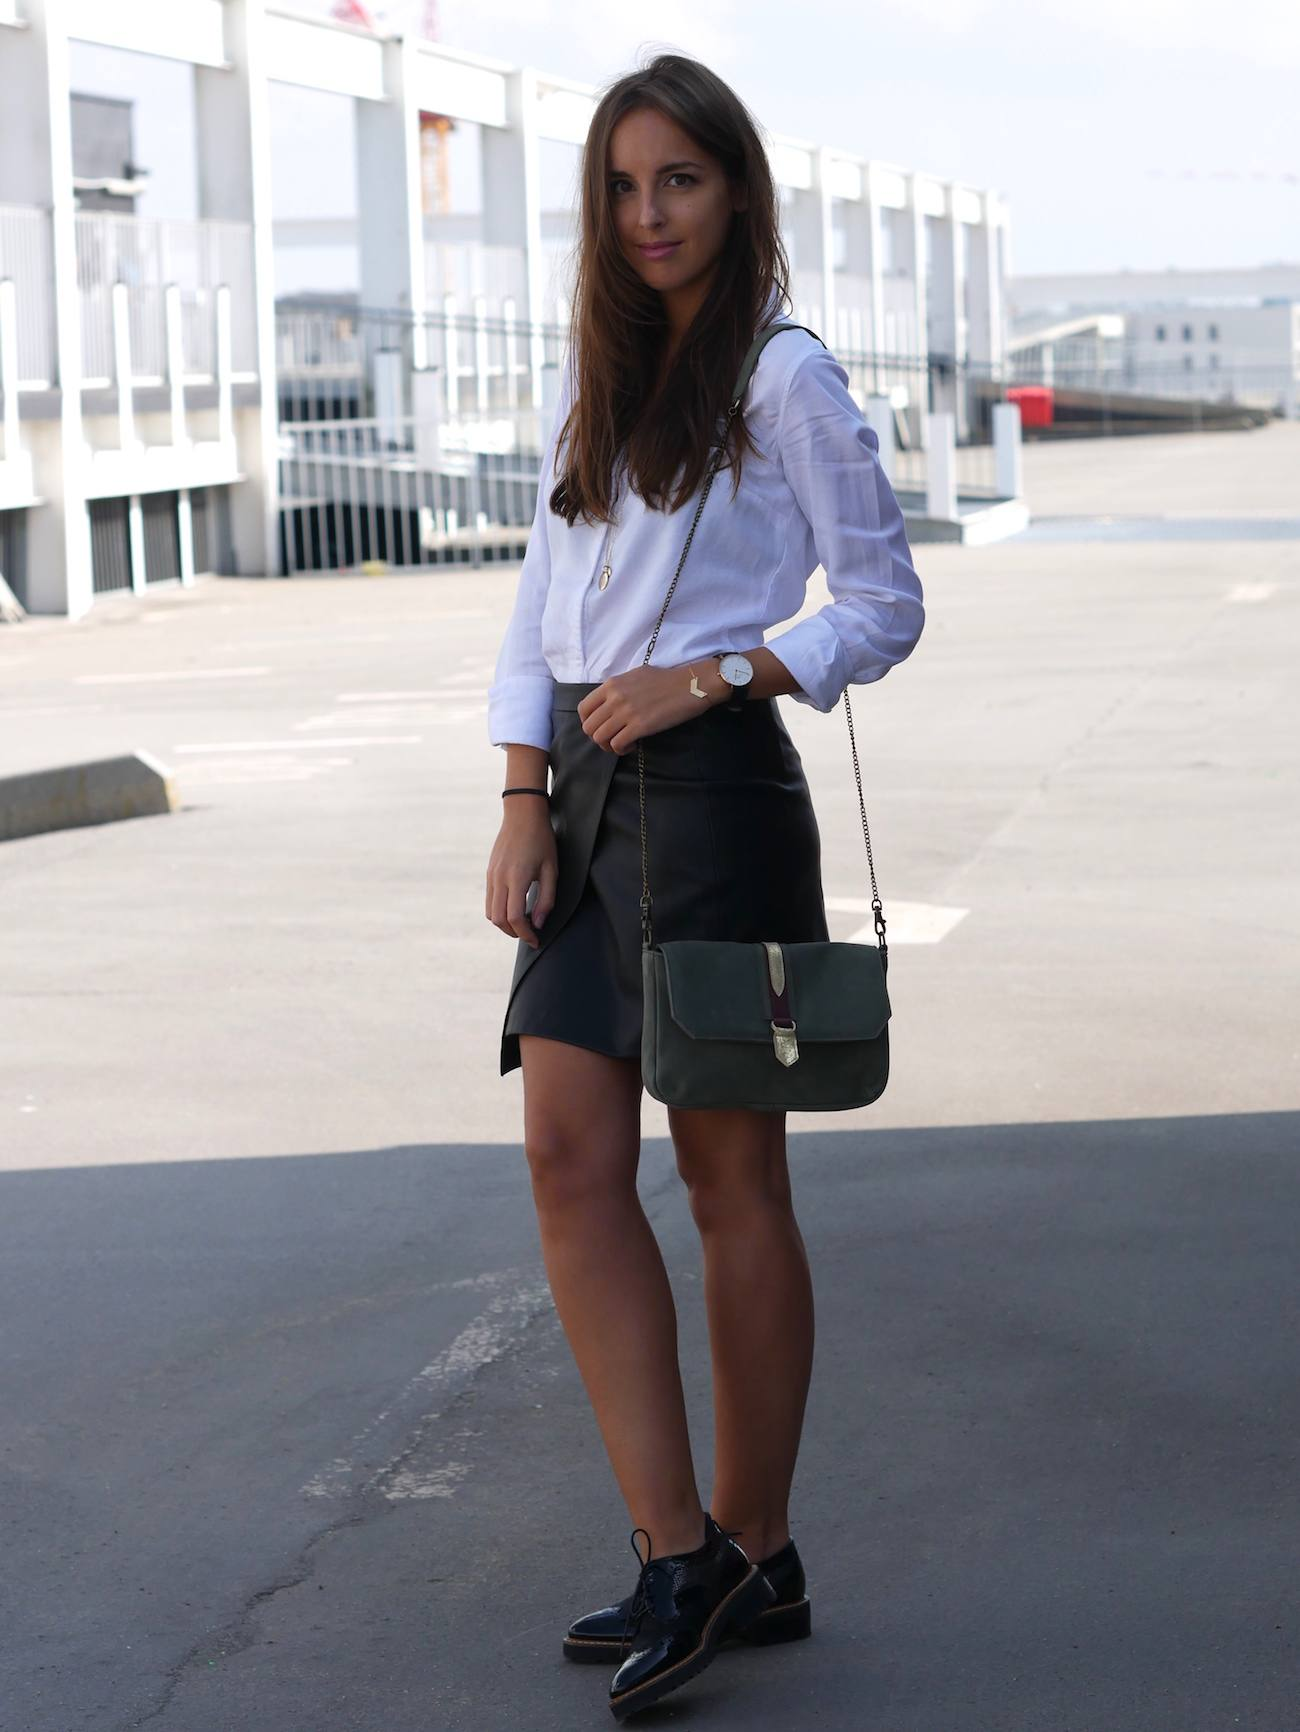 philippe-morvan-chaussures-blog-mode-6